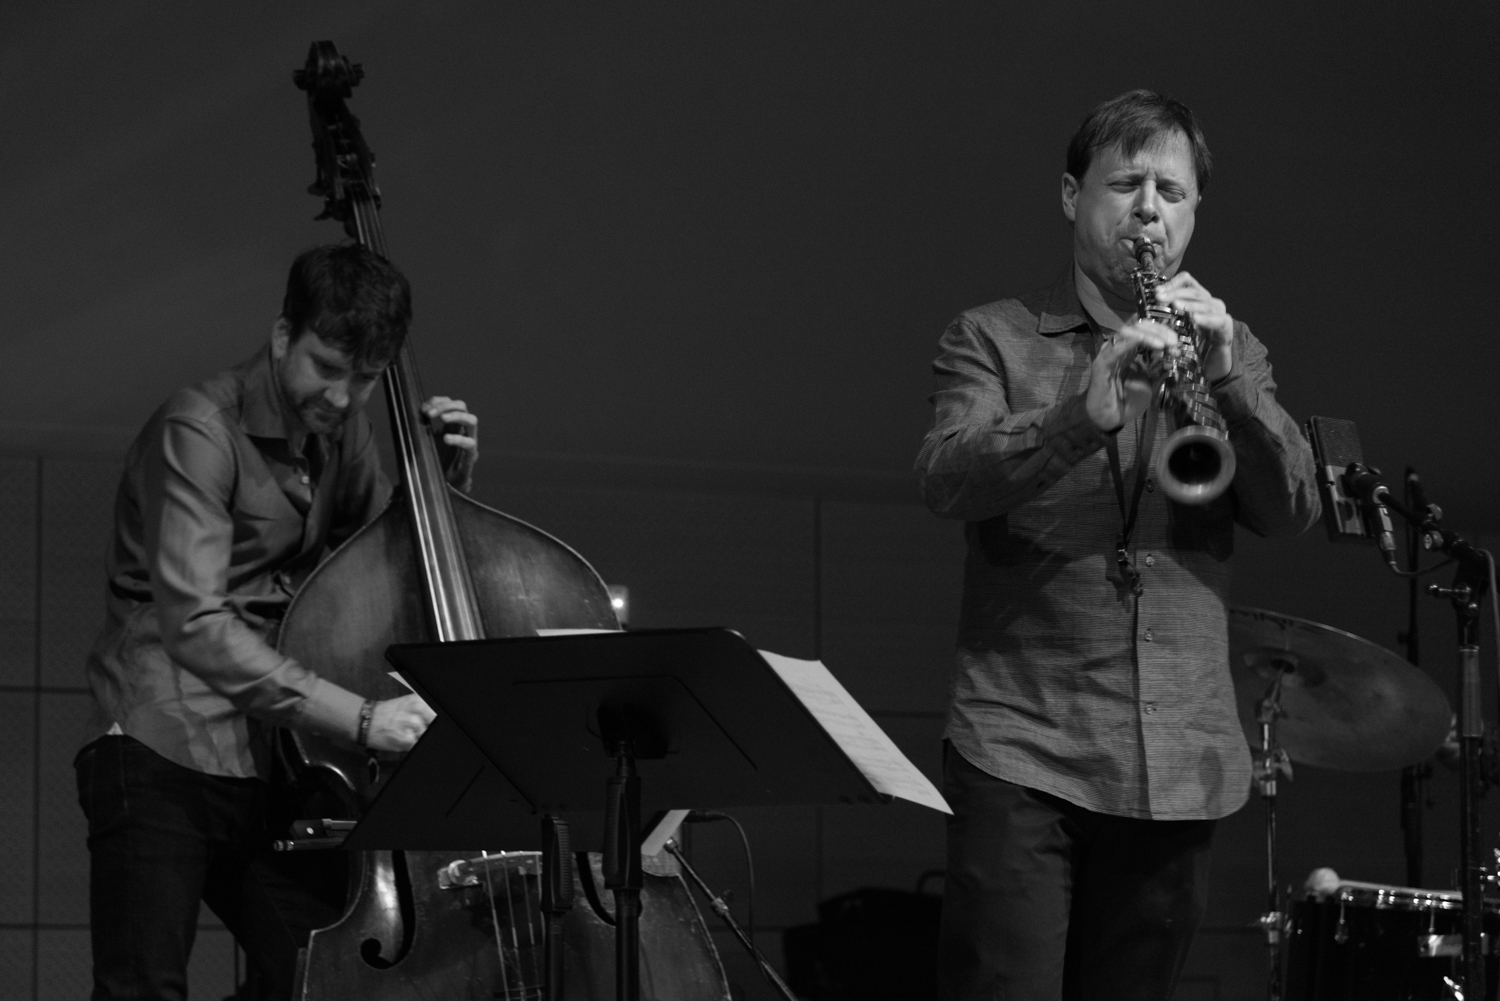 Joe Martin (bass) and Chris Potter (saxophone) performing at New School Tishman Auditorium - ECM Records Stage, January 16.